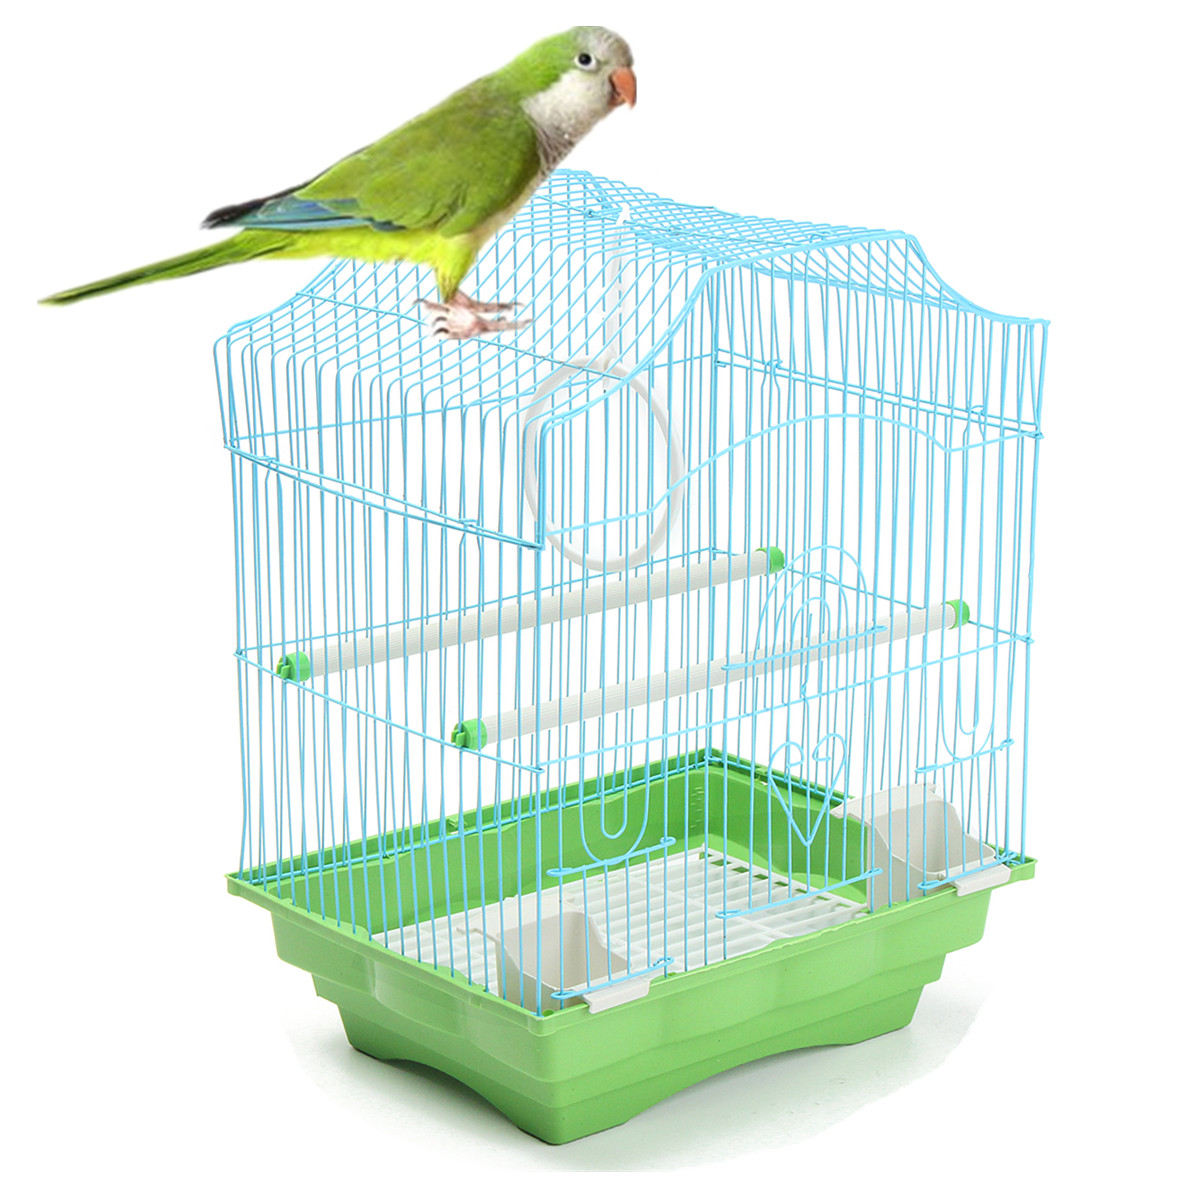 """Grtsunsea Small Bird Cage Pet Cages Budgie Finch Bird Cage Budgies Canary,15.1""""x11.4""""x8.26"""""""